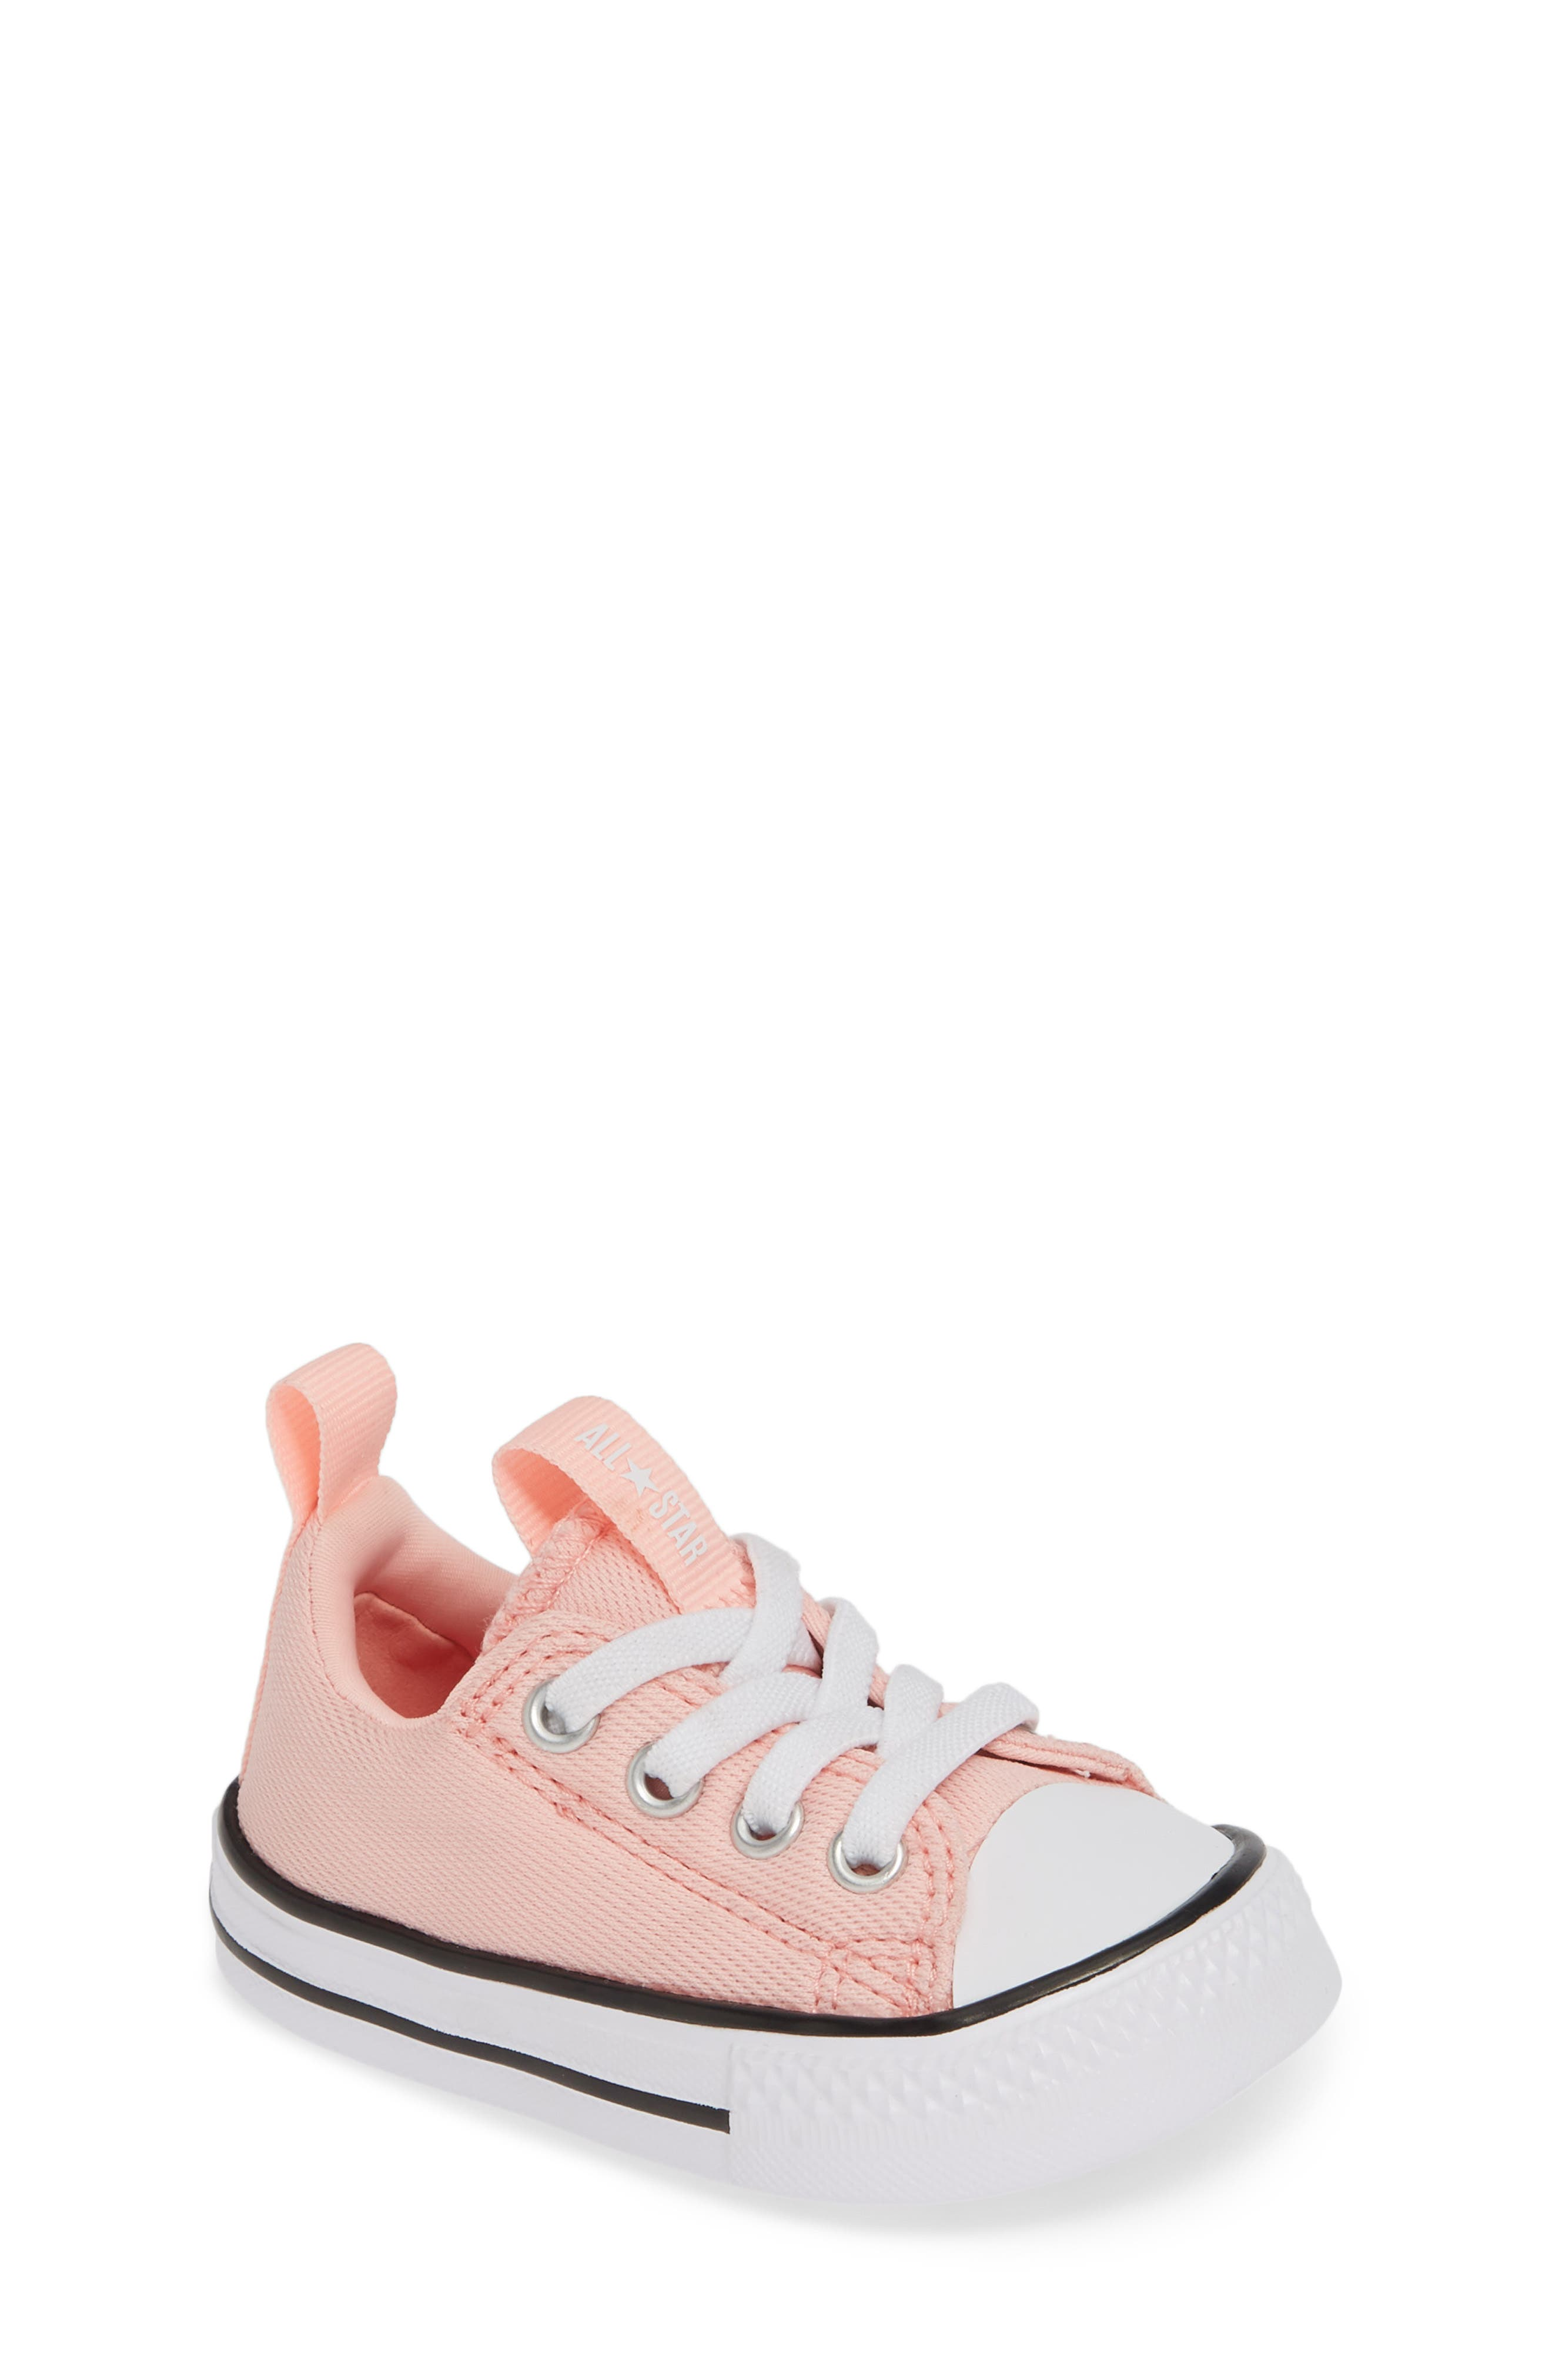 Toddler Converse Chuck Taylor All Star Superplay Sneaker Size 6 M  Pink